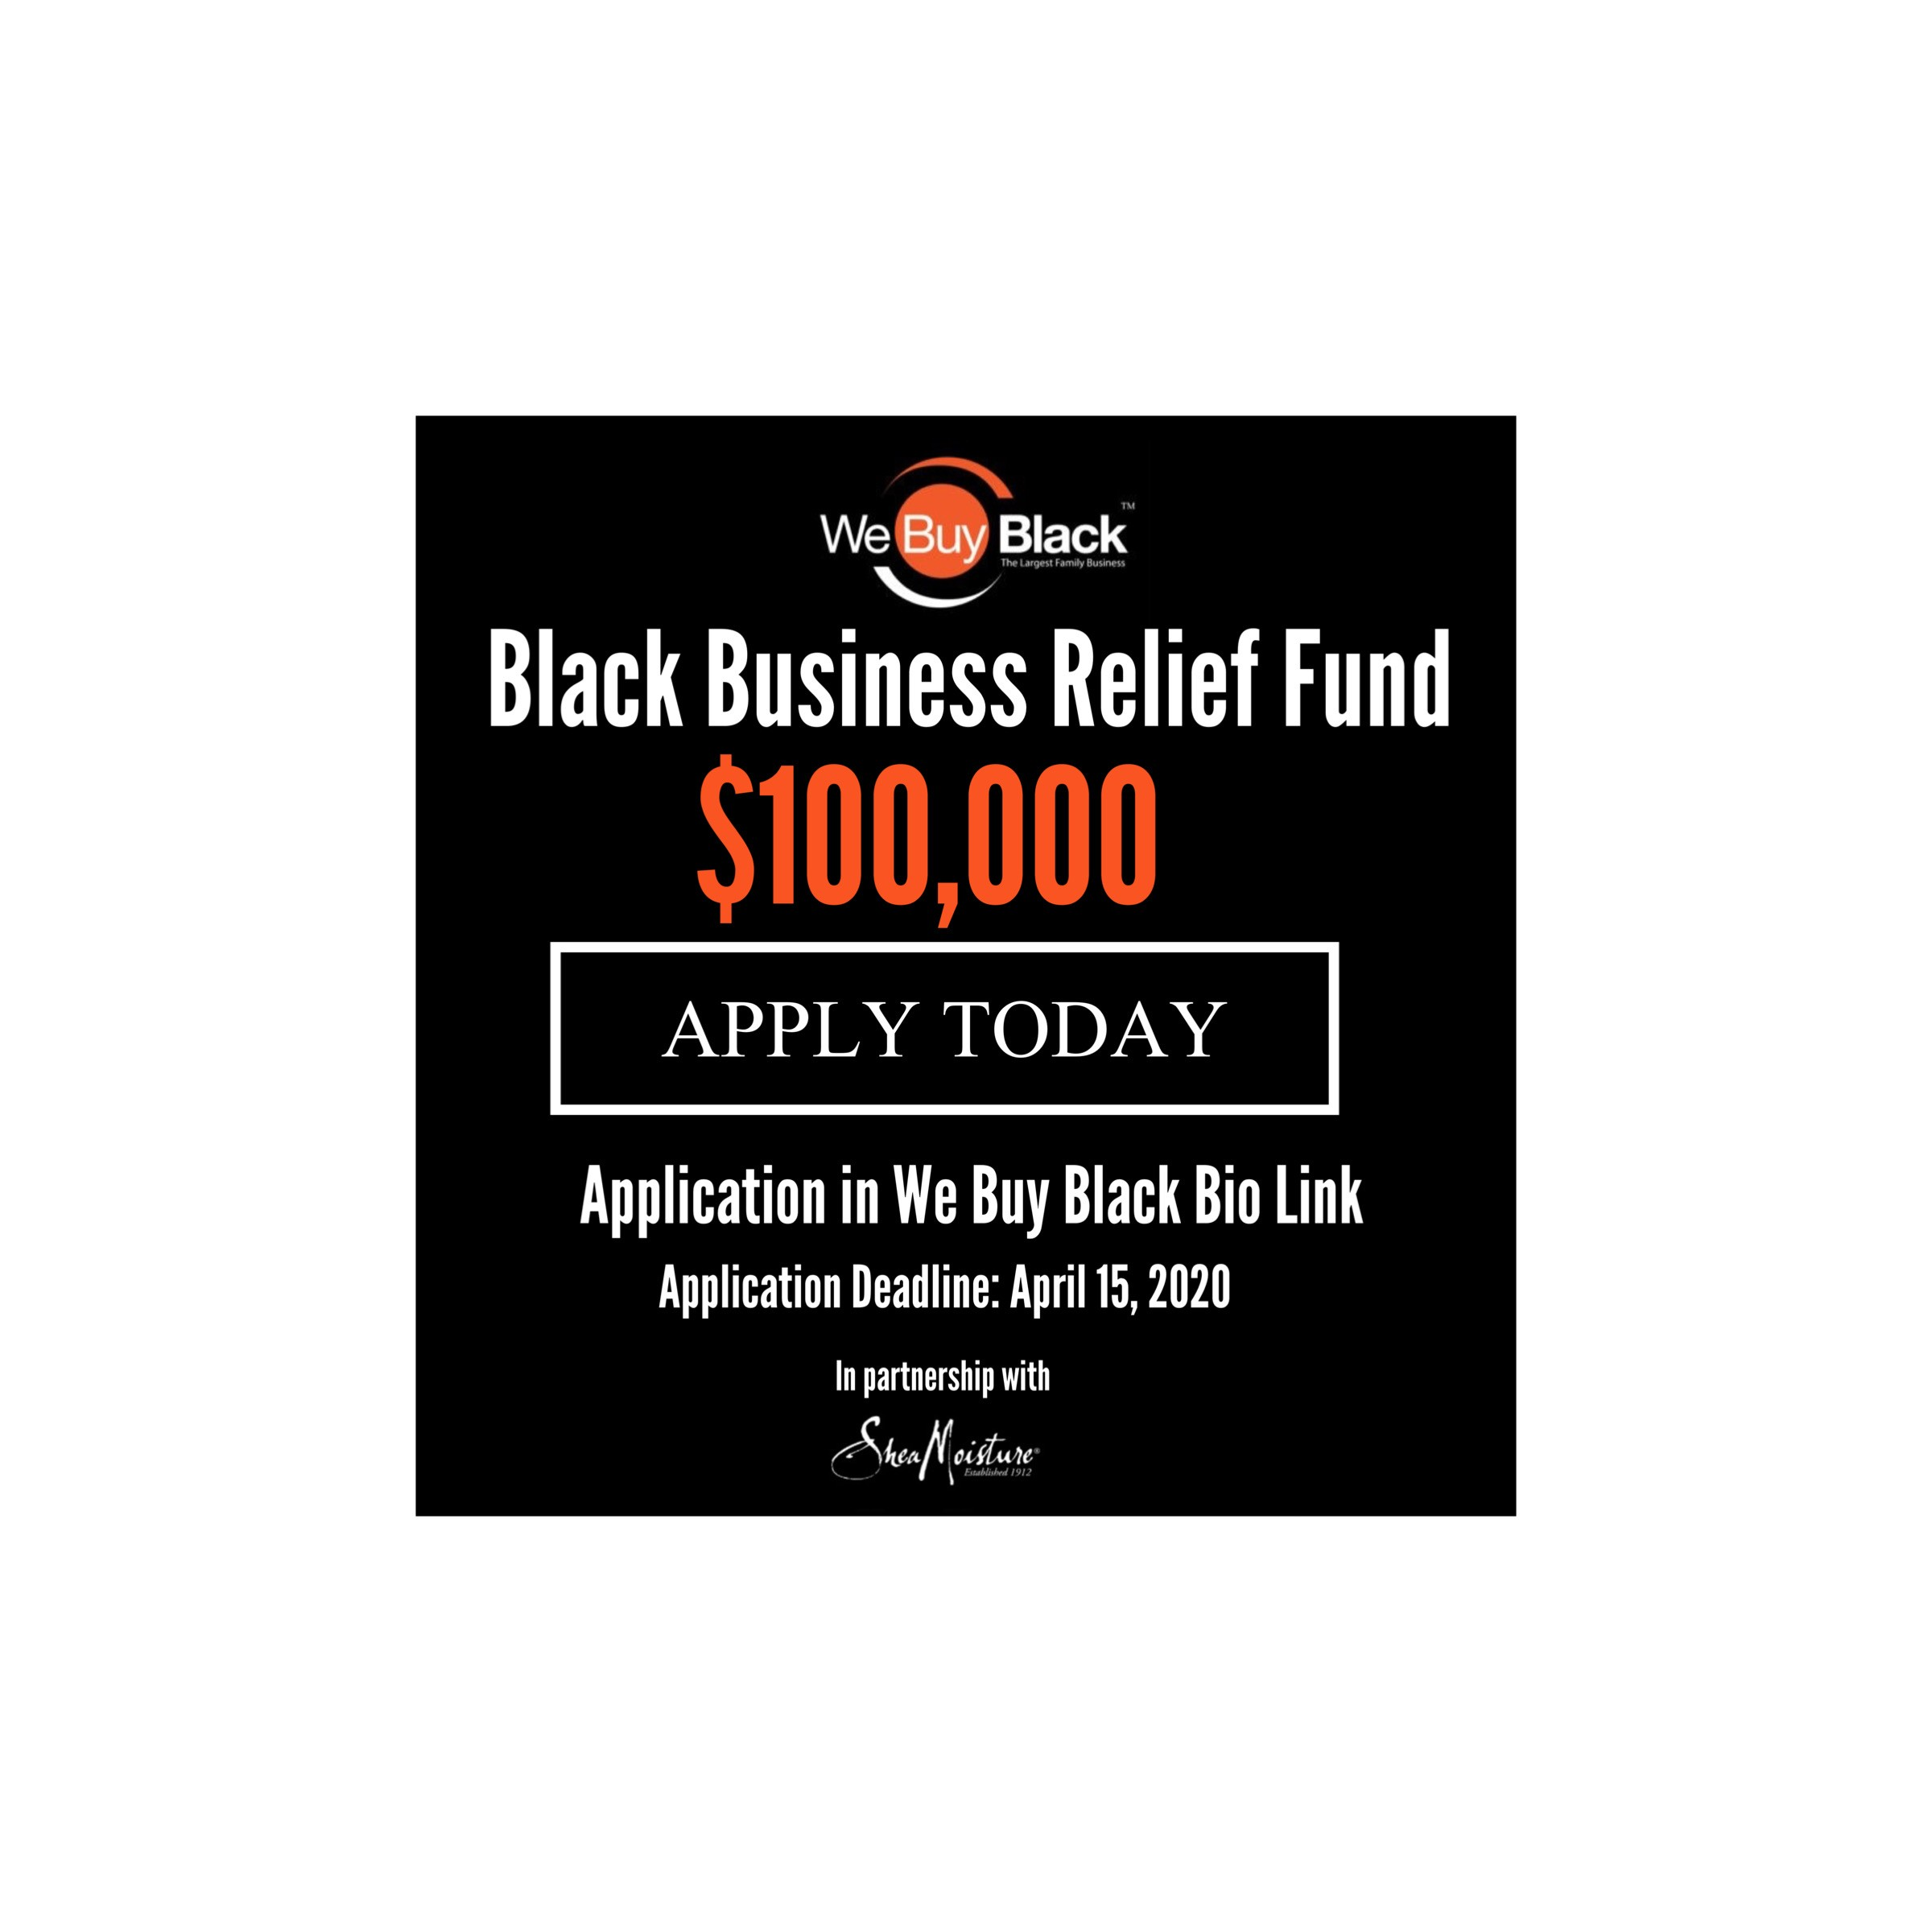 Black Business Relief Fund Official Rules